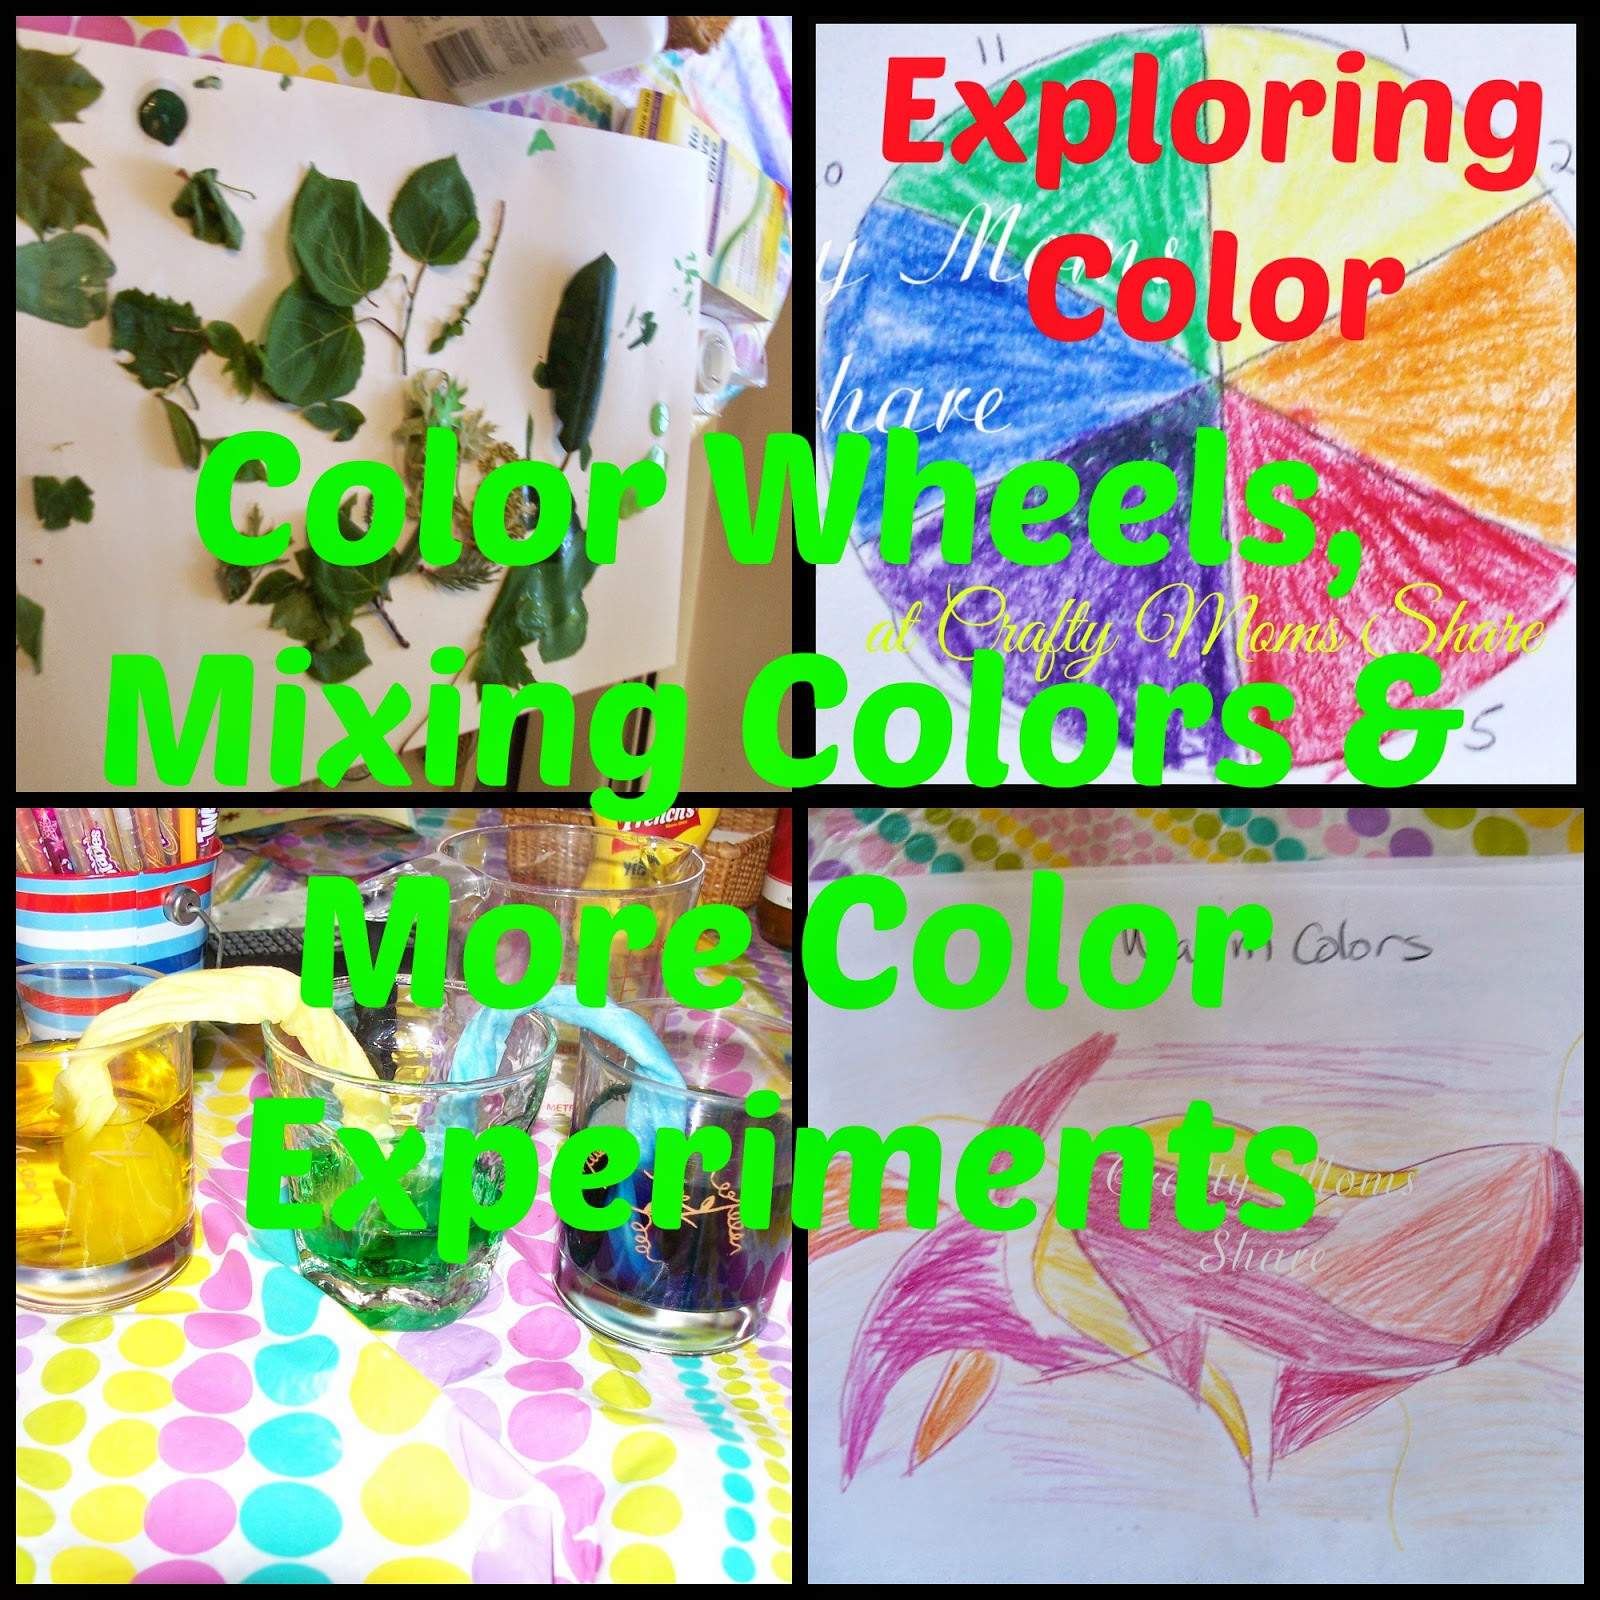 Crafty Moms Share: Color Explorations: Color Wheel, Color Mixing & More!